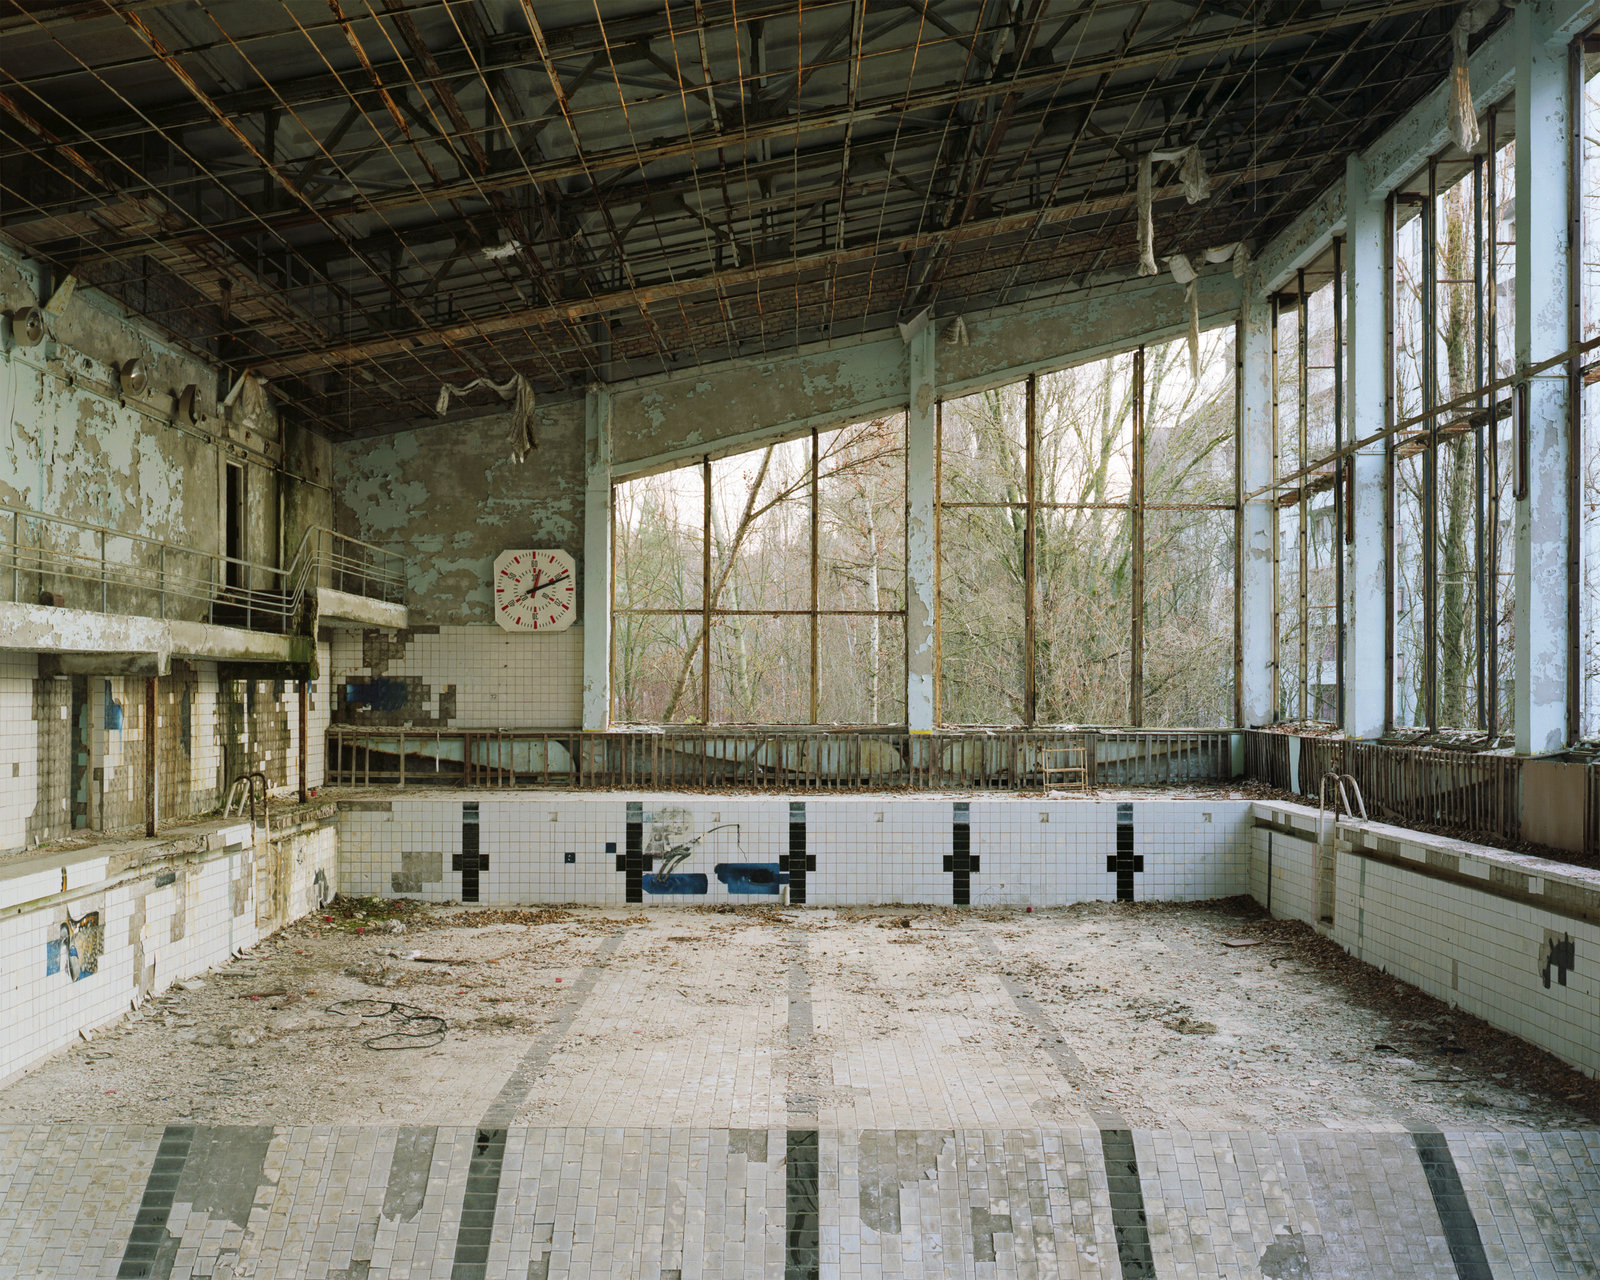 Pictures of current day chernobyl